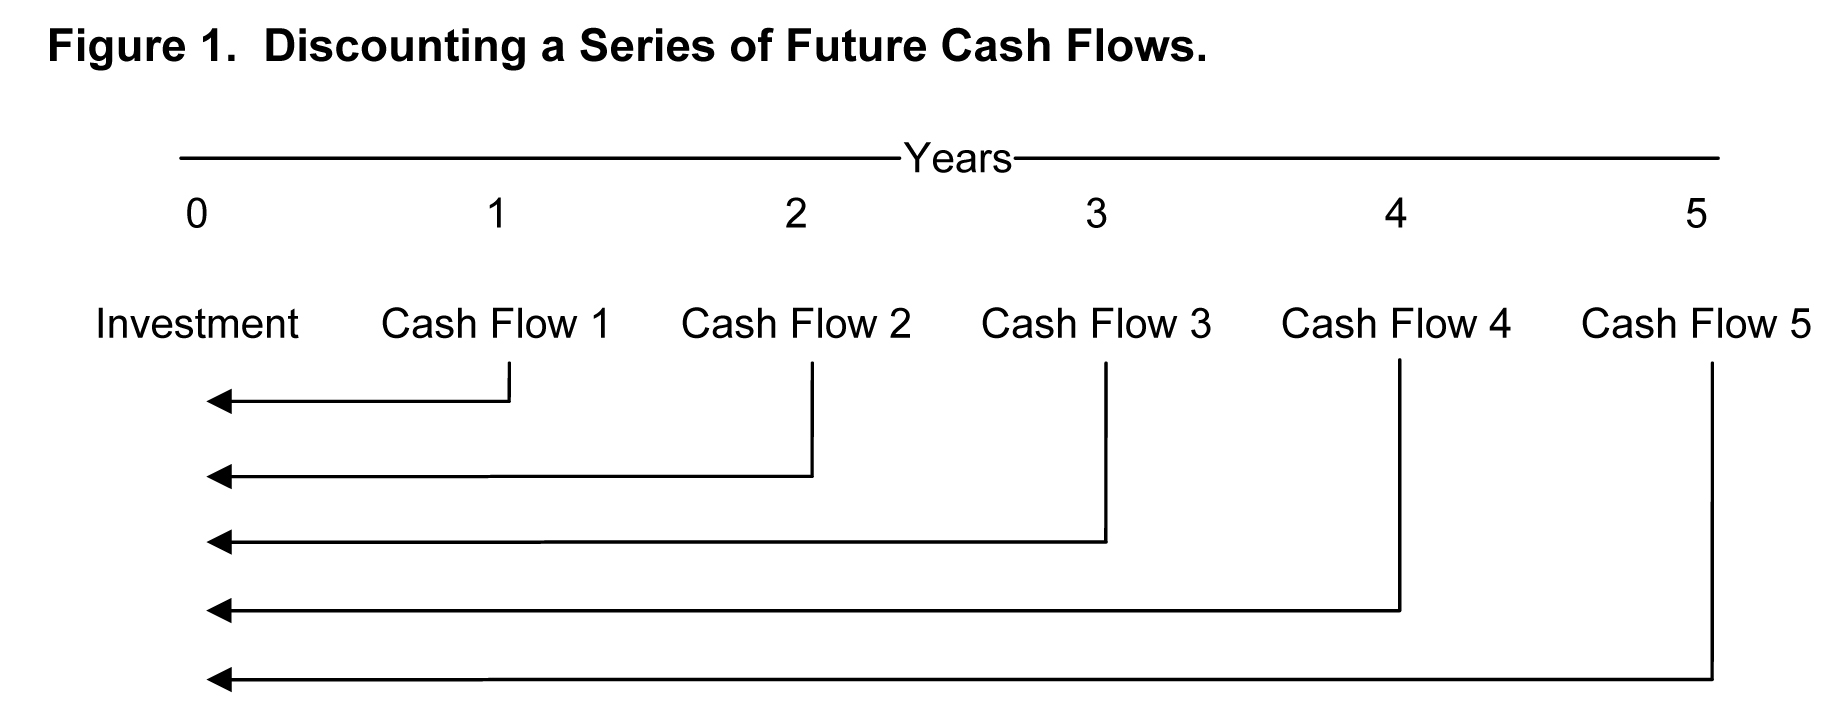 Discounting a series of future cash flows